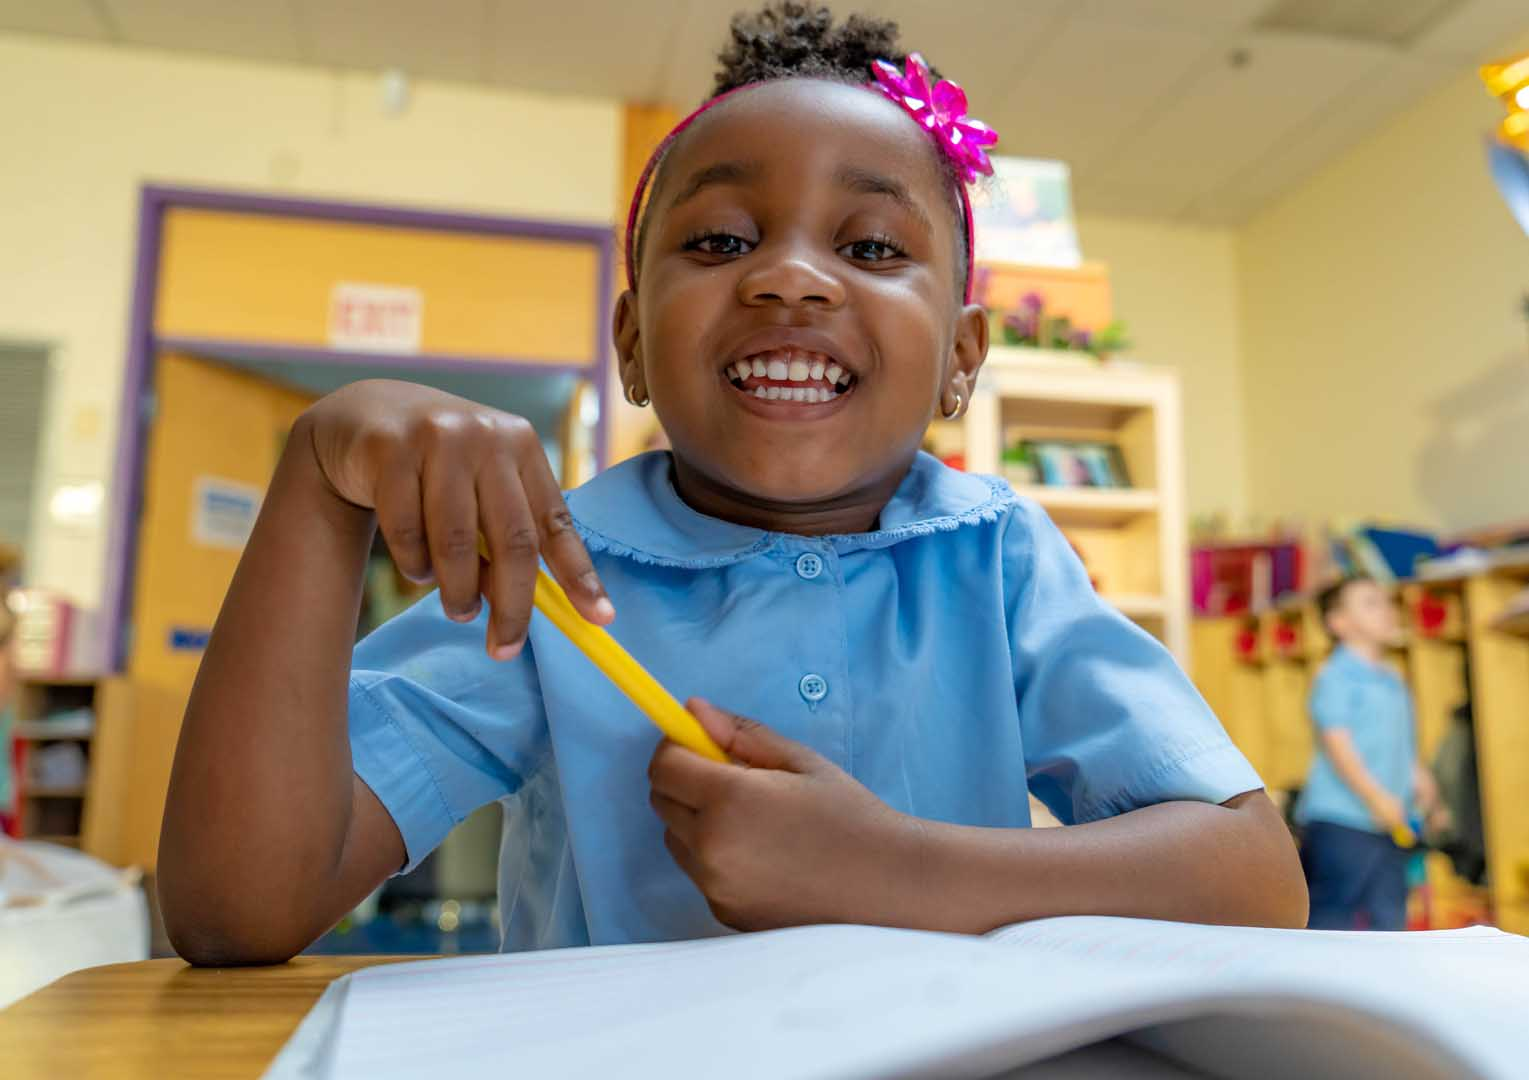 Little girl holding a pencil smiling